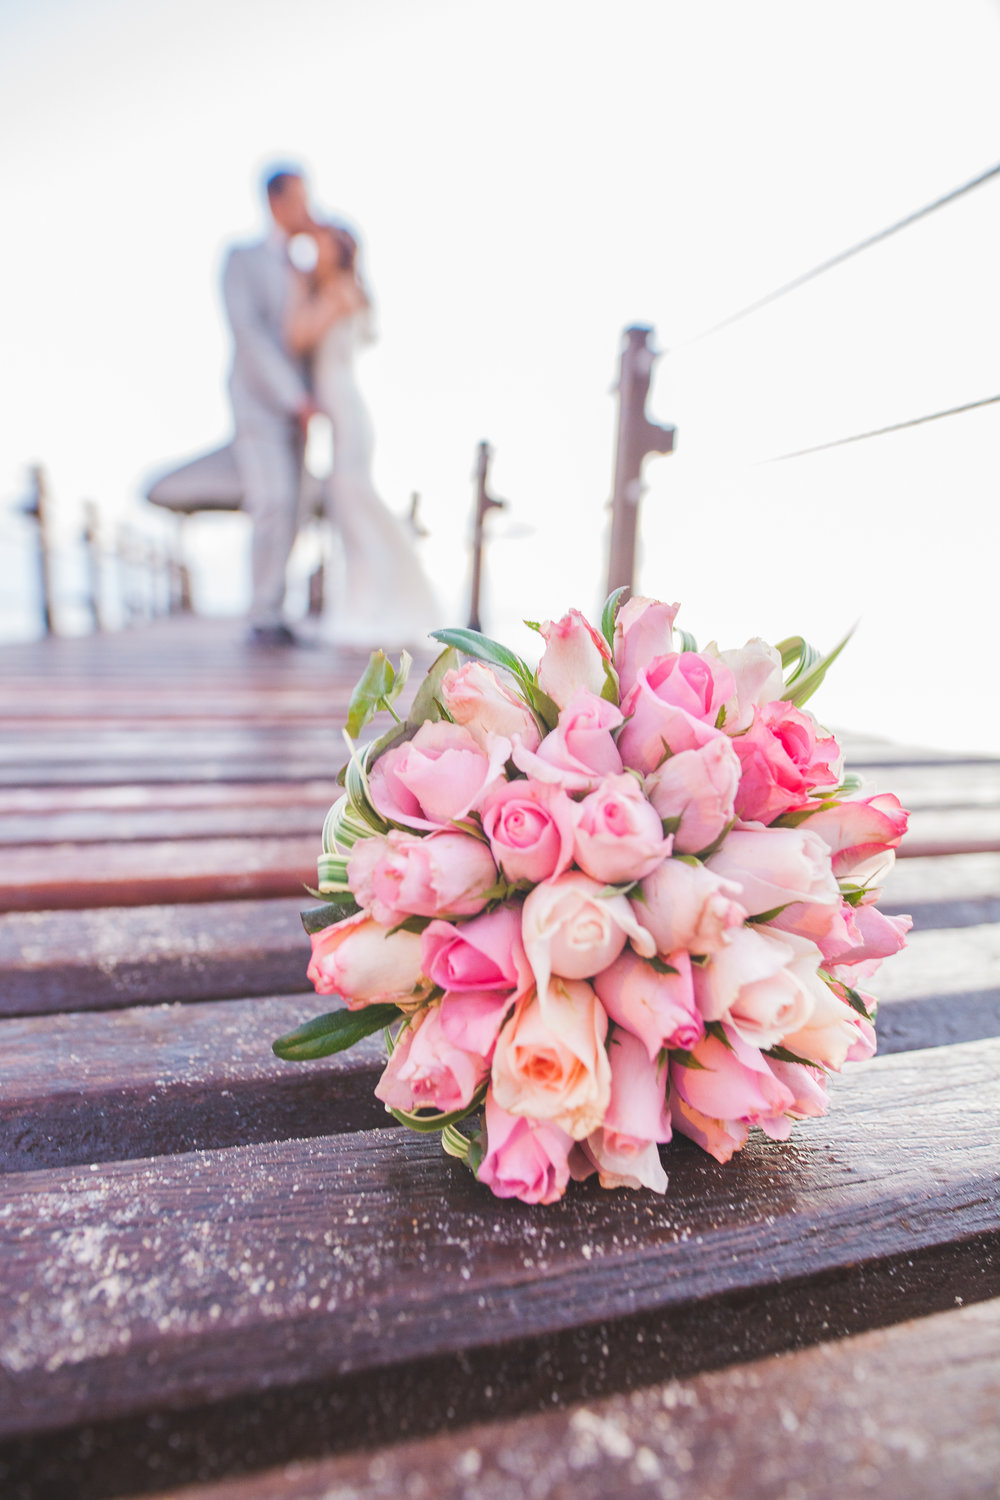 Wedding Flower and Couple on a Jetty in Mauritius